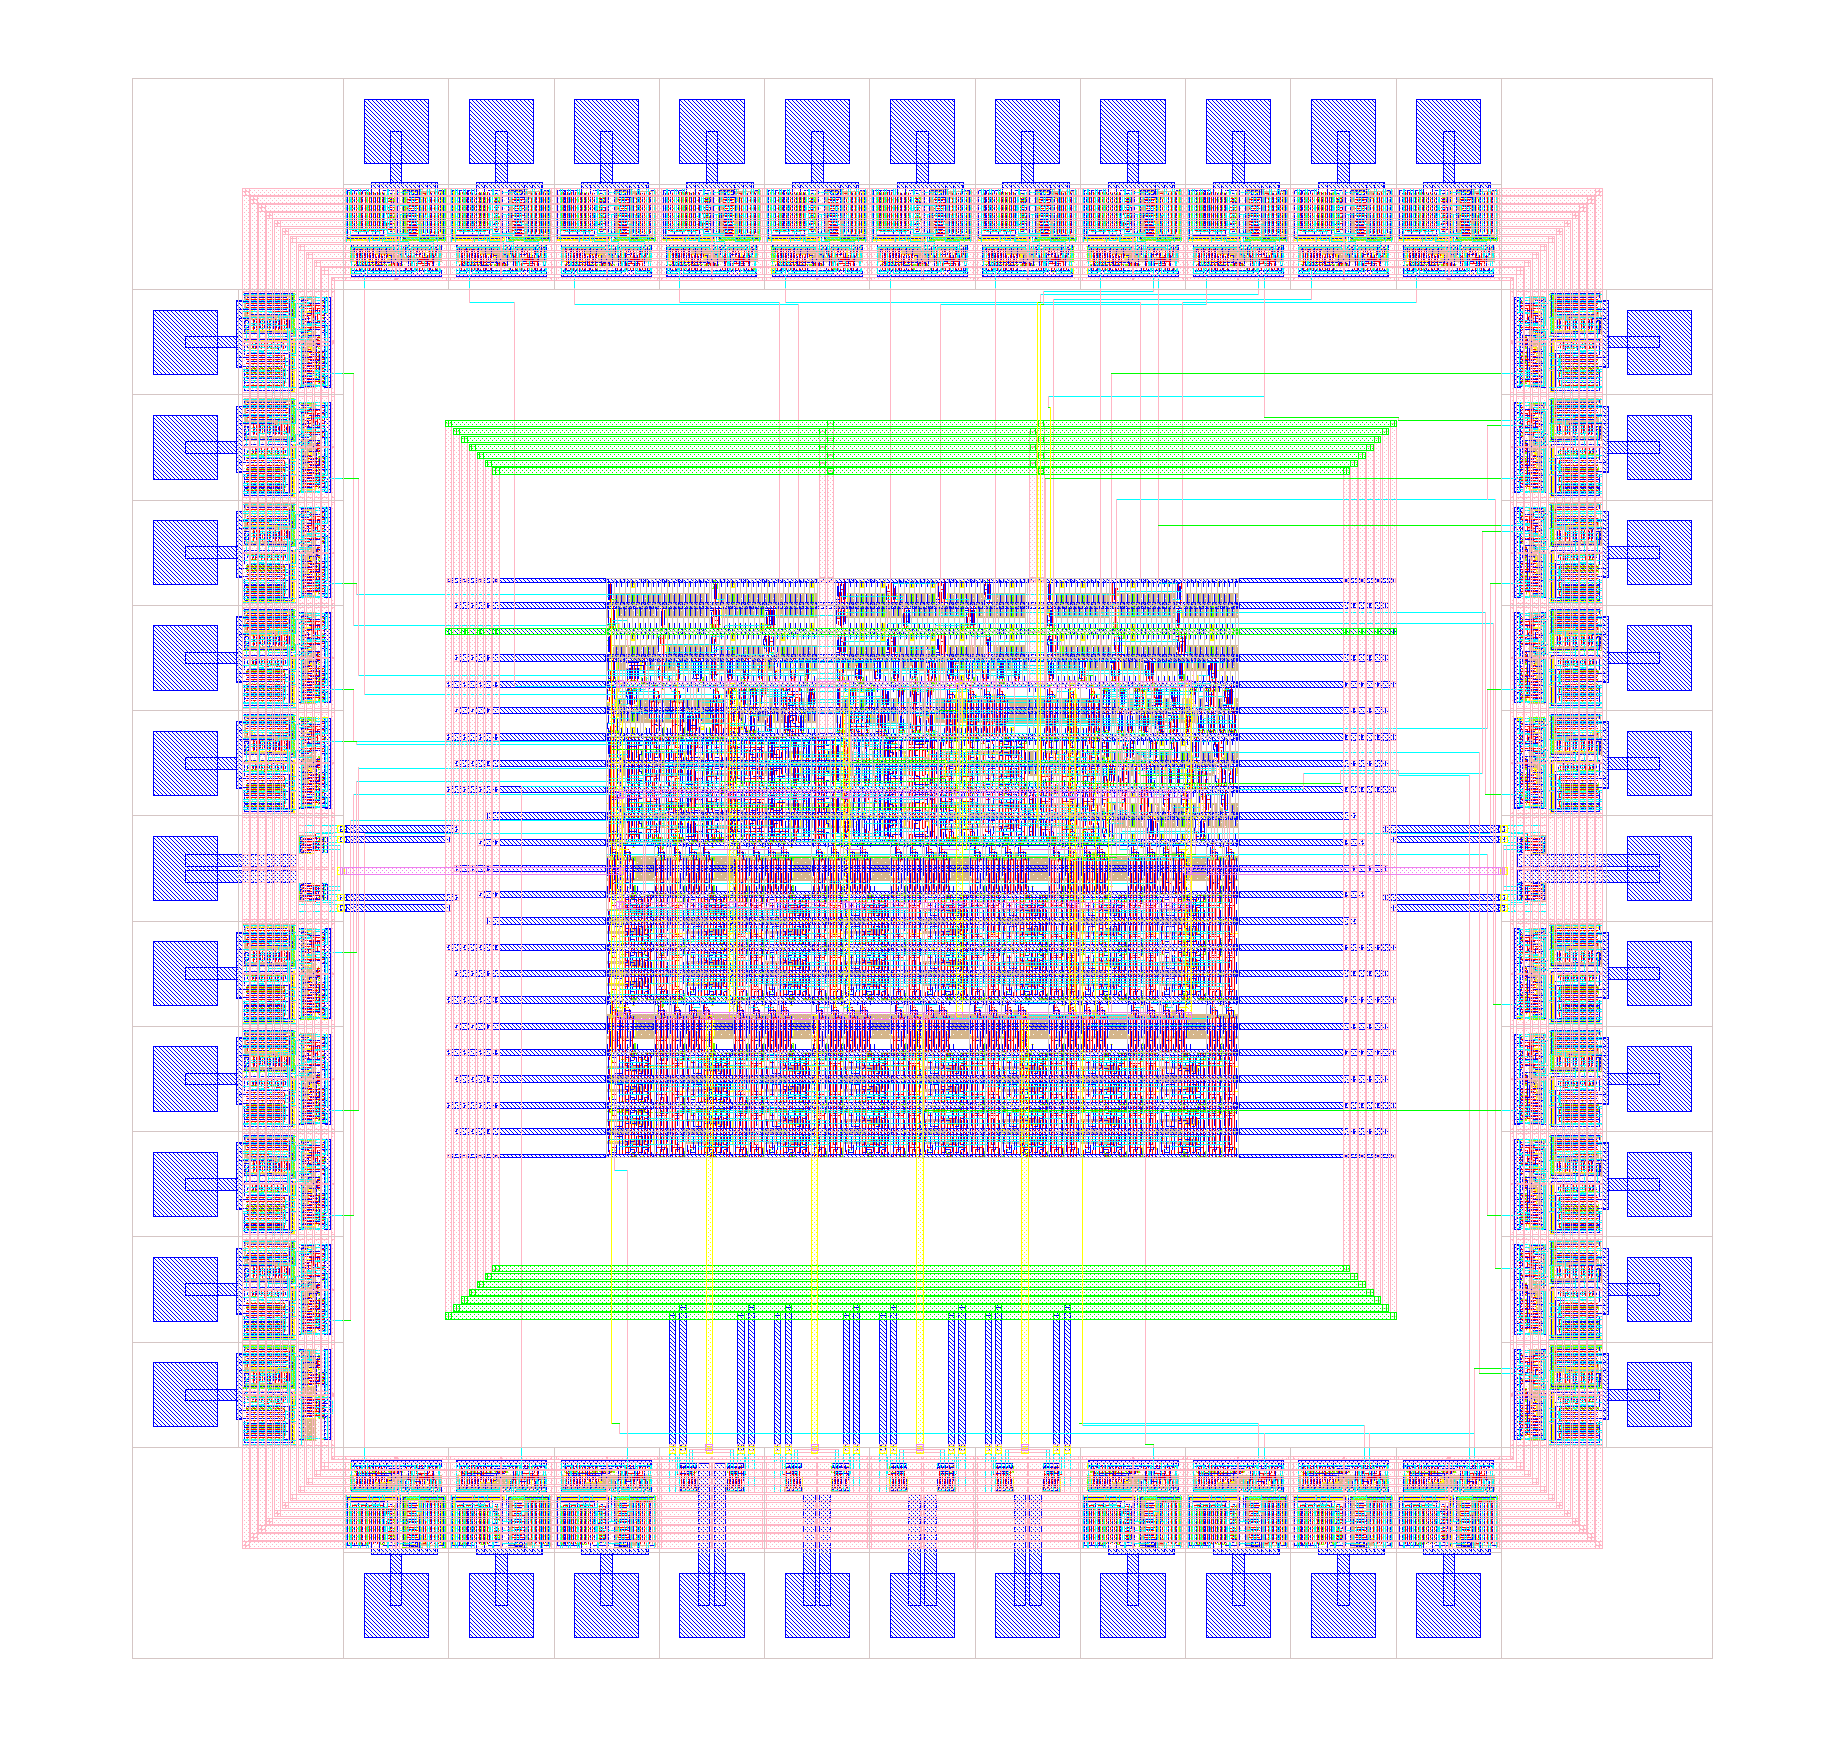 Routed AM2901 layout picture.